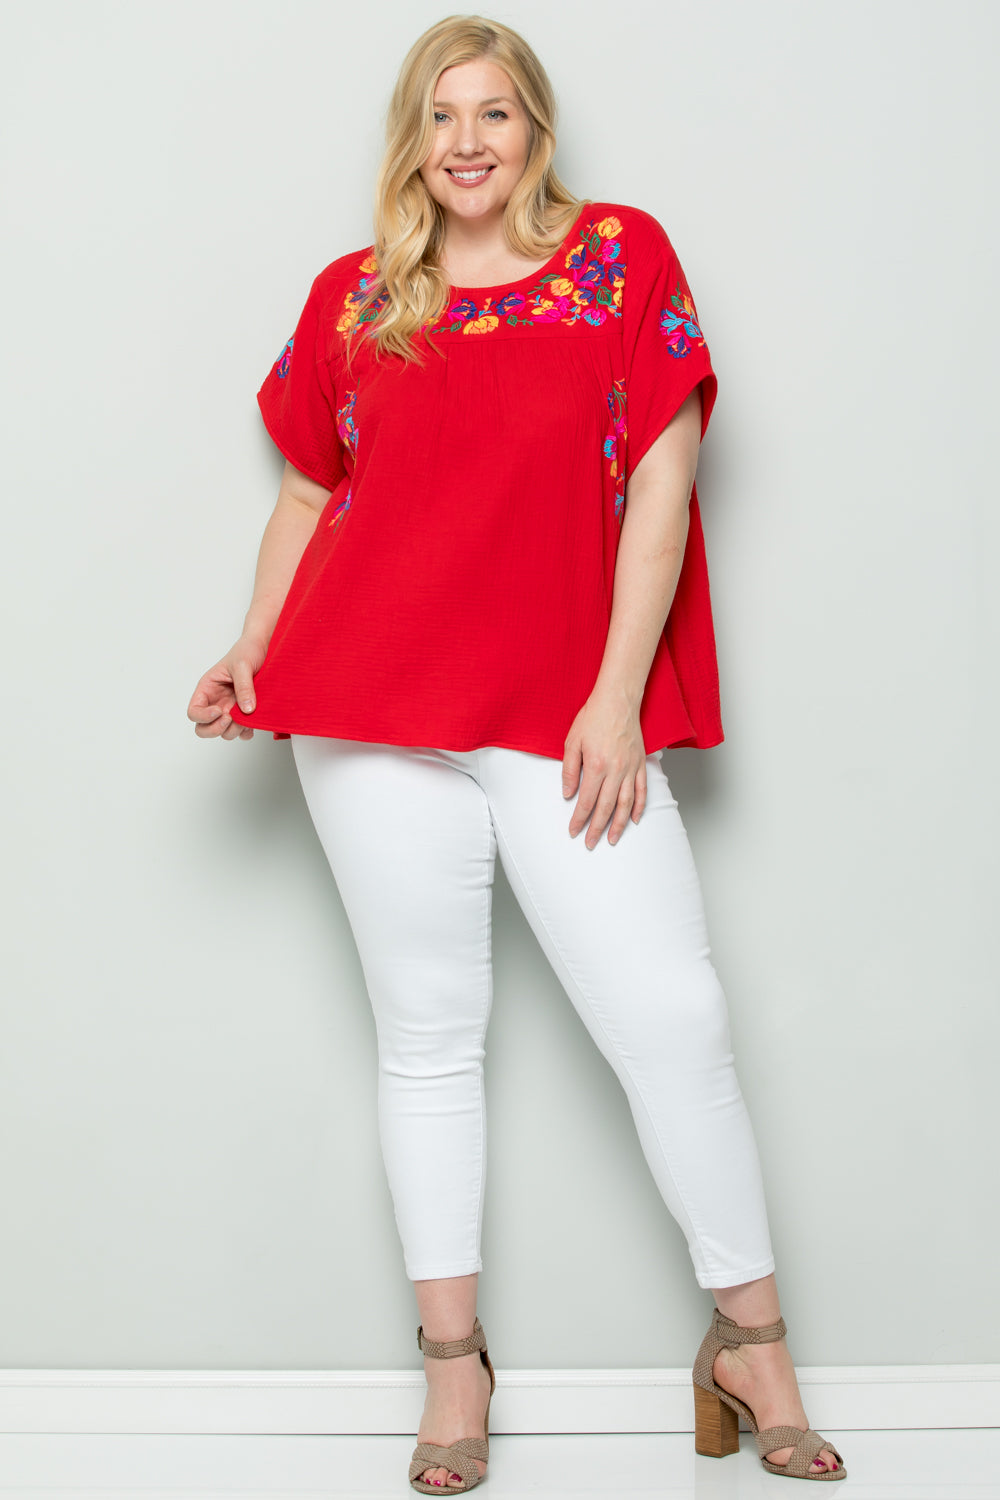 WT2185 Embroidery Top - Red